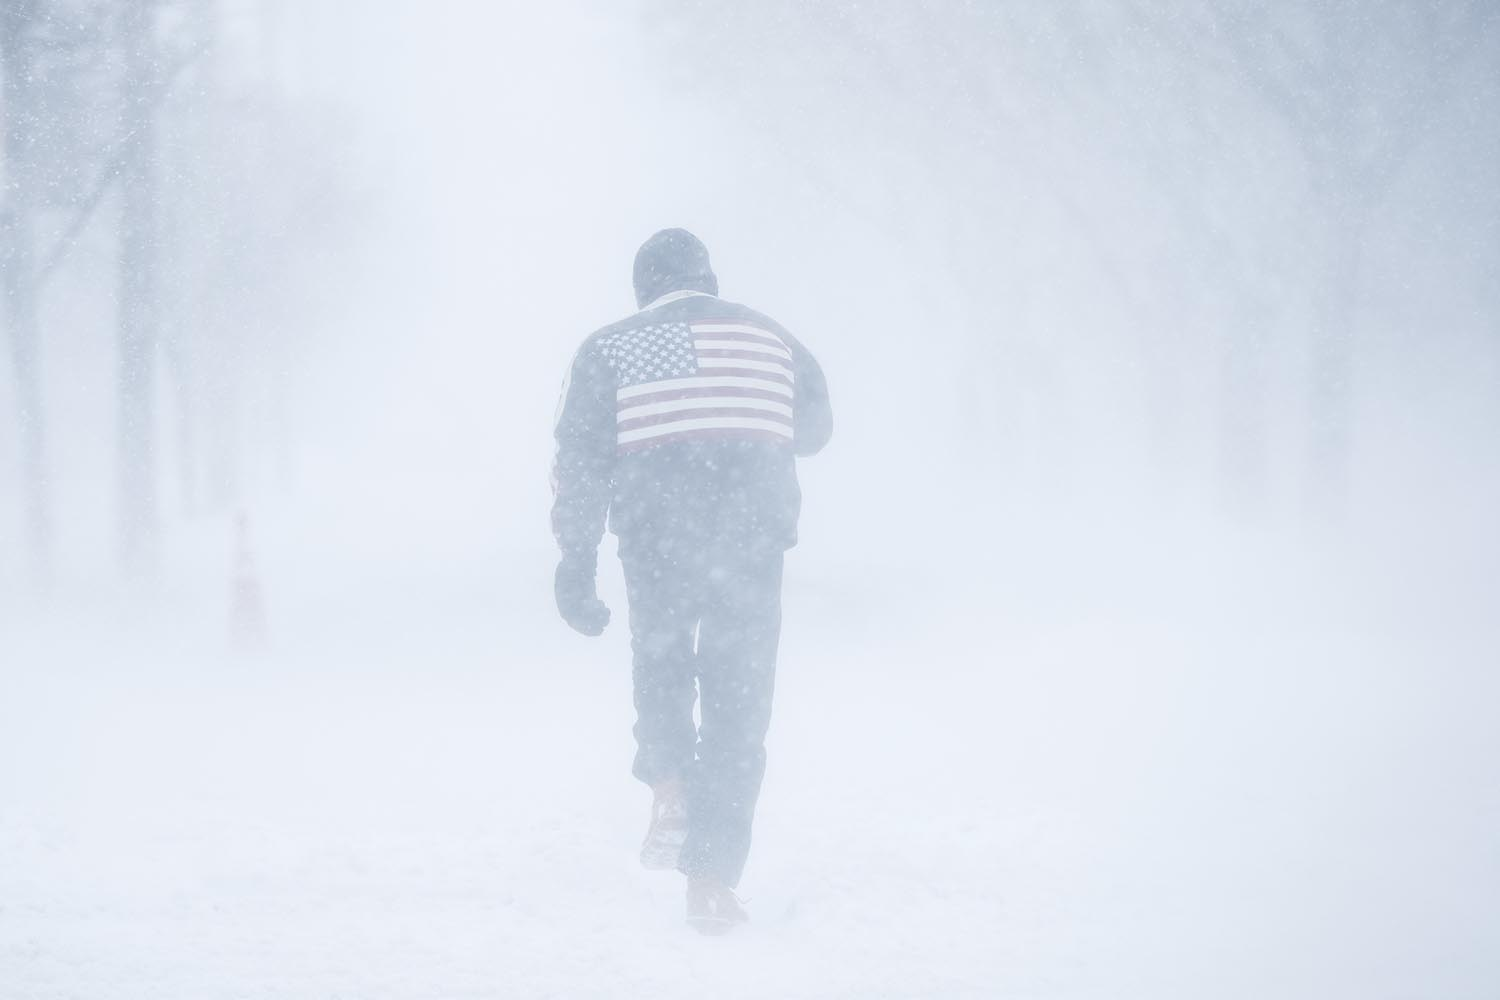 <div class='meta'><div class='origin-logo' data-origin='AP'></div><span class='caption-text' data-credit='AP Photo/Matt Rourke'>A man pushes his way through driving winds during a winter snowstorm in Atlantic City, N.J., Thursday, Jan. 4, 2018.</span></div>